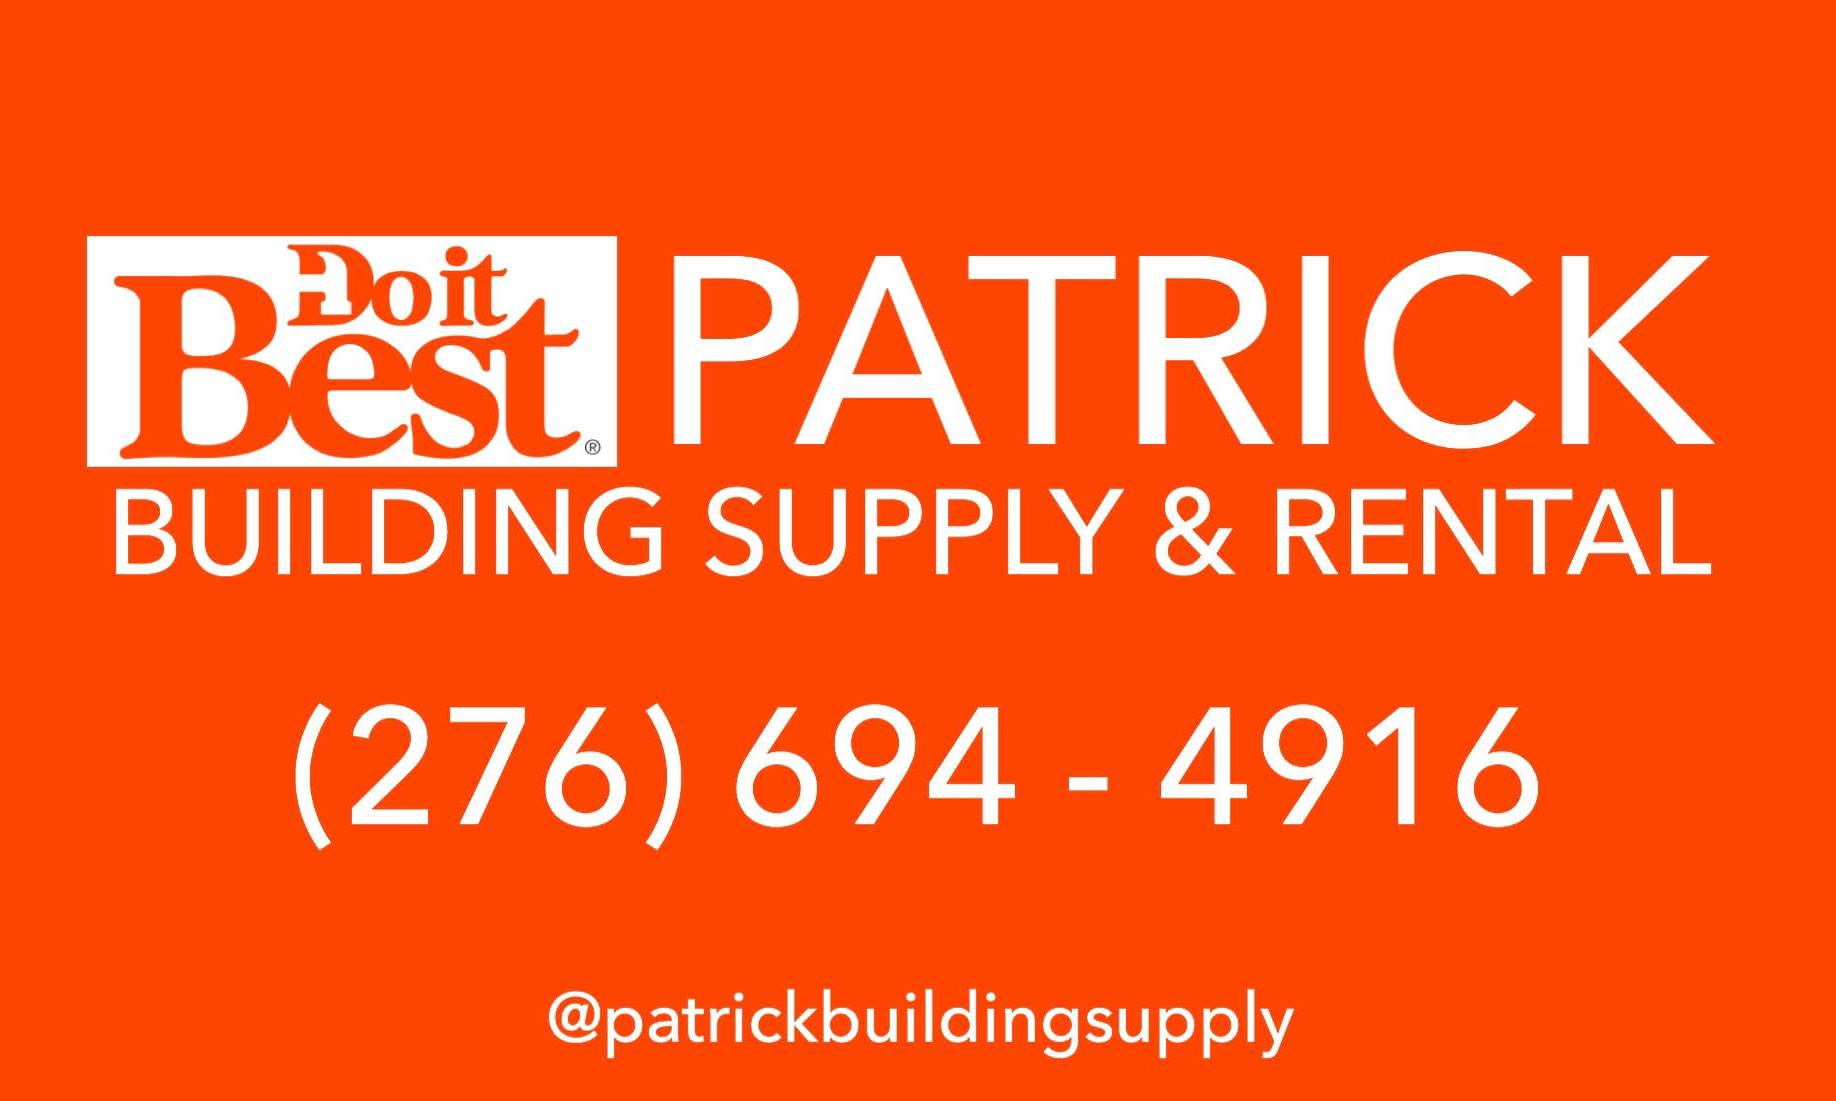 Patrick Building Supply